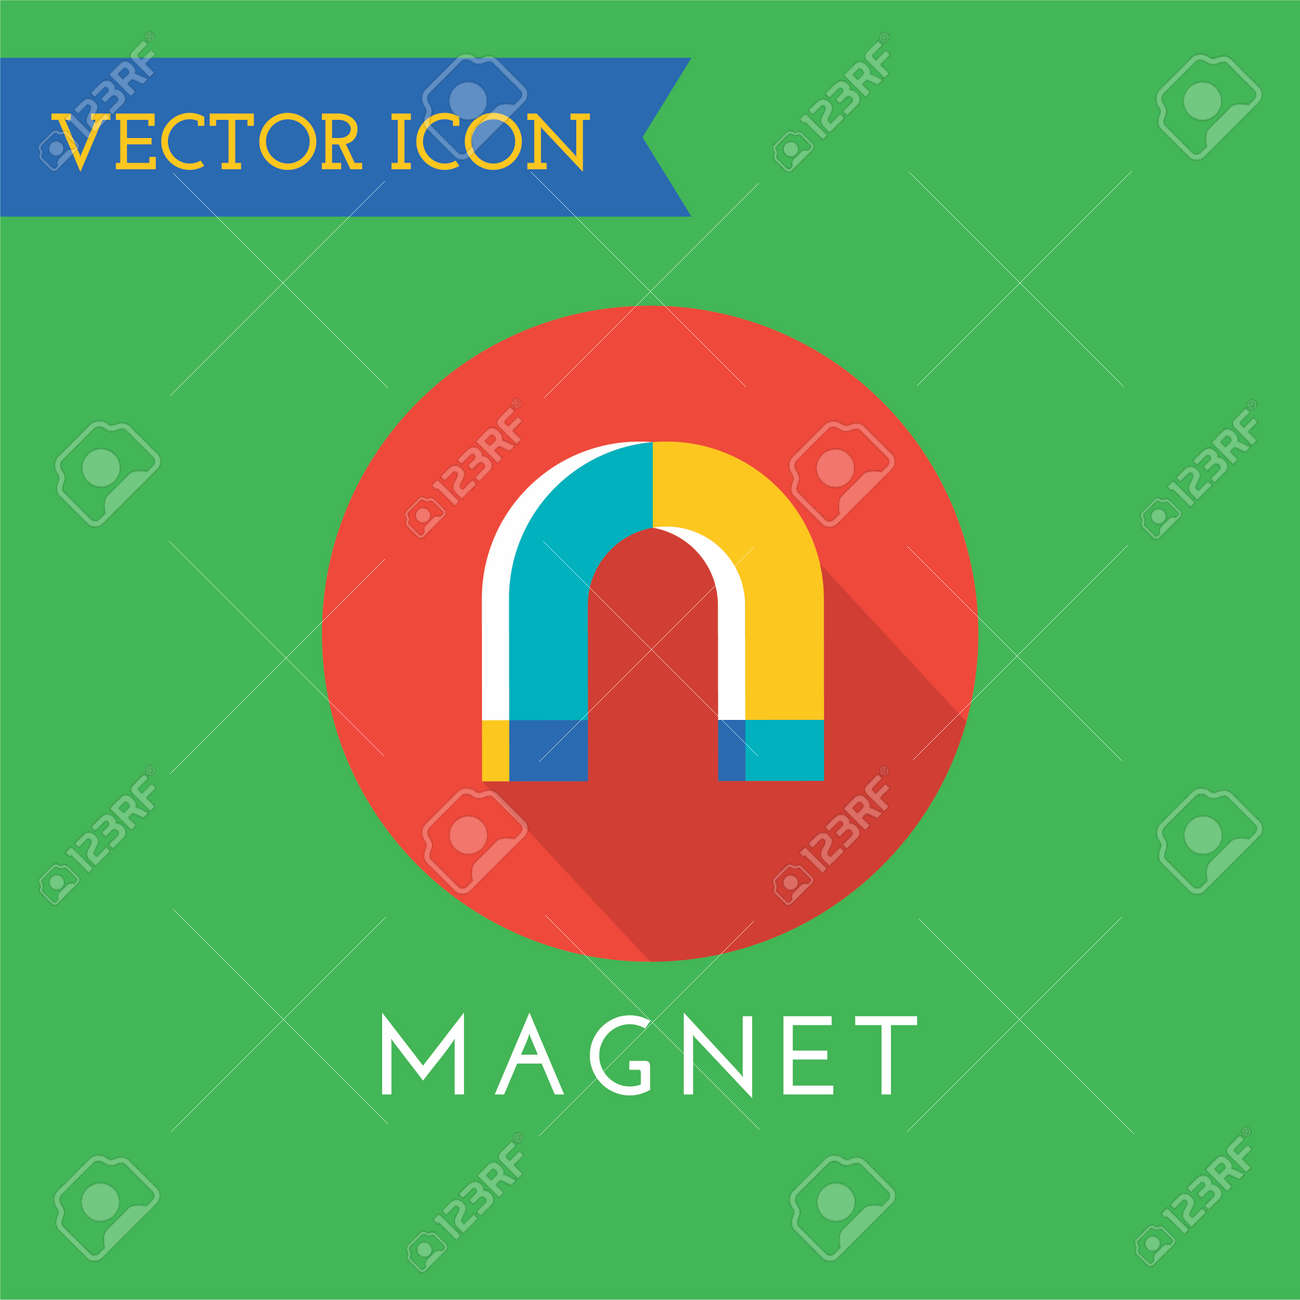 Magnet Icon Technology Money Or Commerce Concept And Mobile